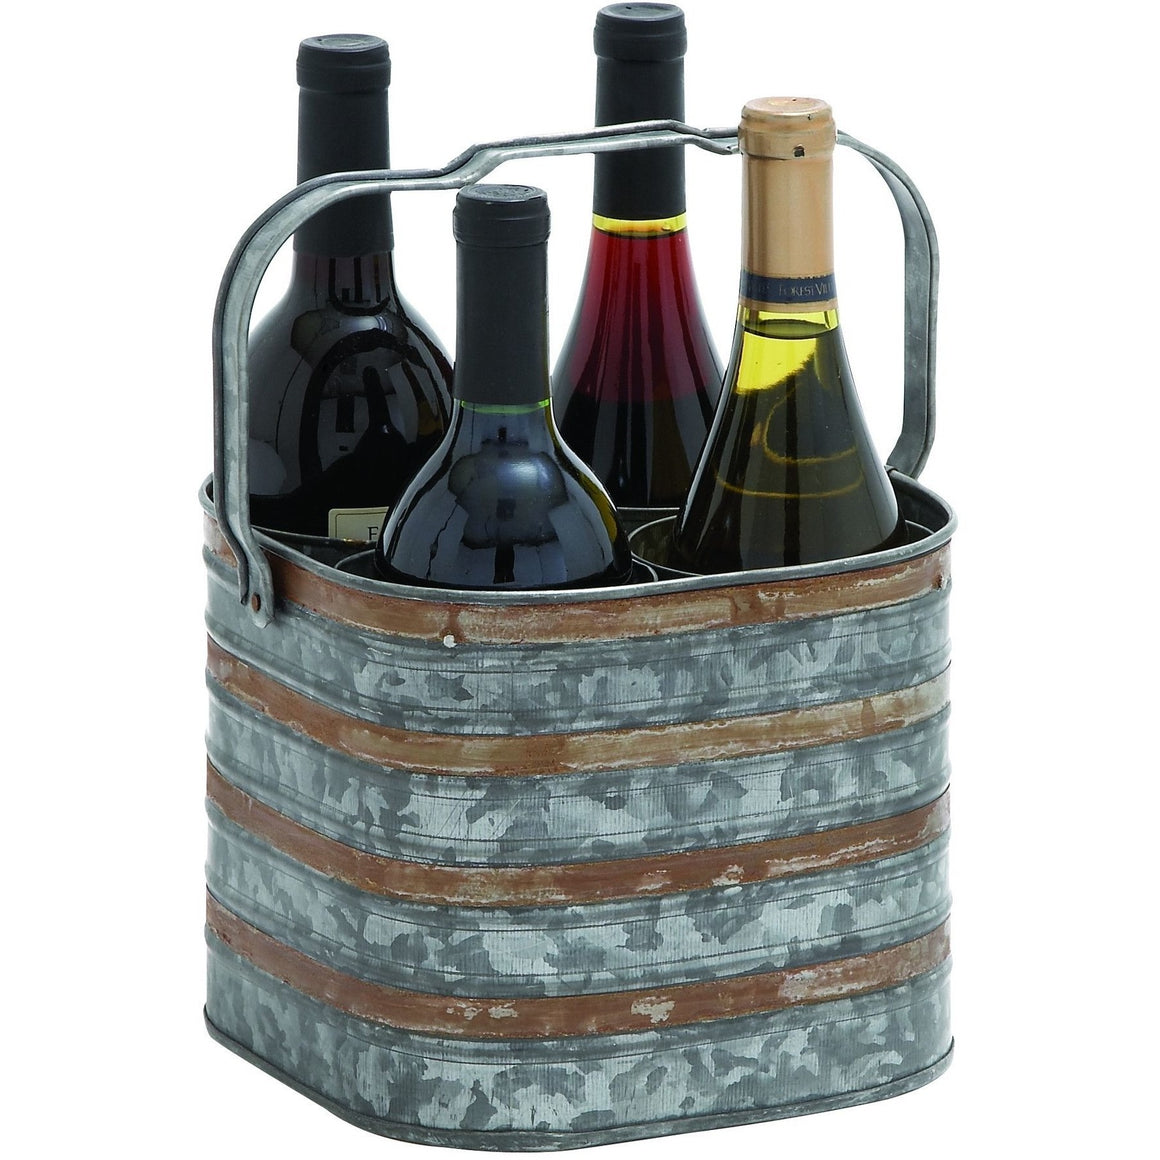 Rustic Metal Galvanized Four Bottle Wine Holder 38194